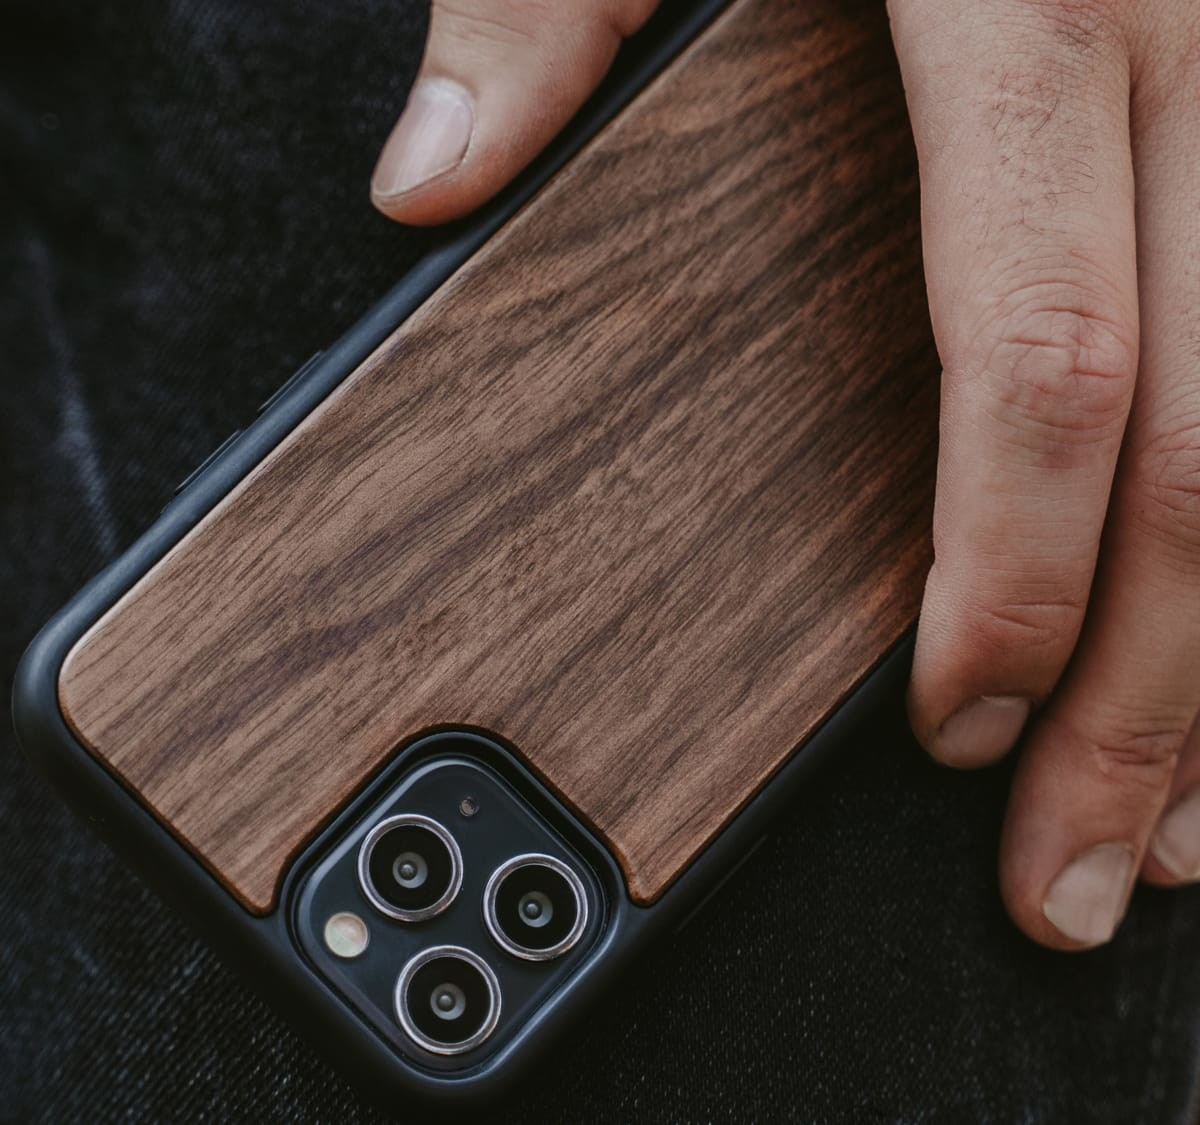 Oakywood Wooden iPhone 12 protective case is compatible with a range of iPhones